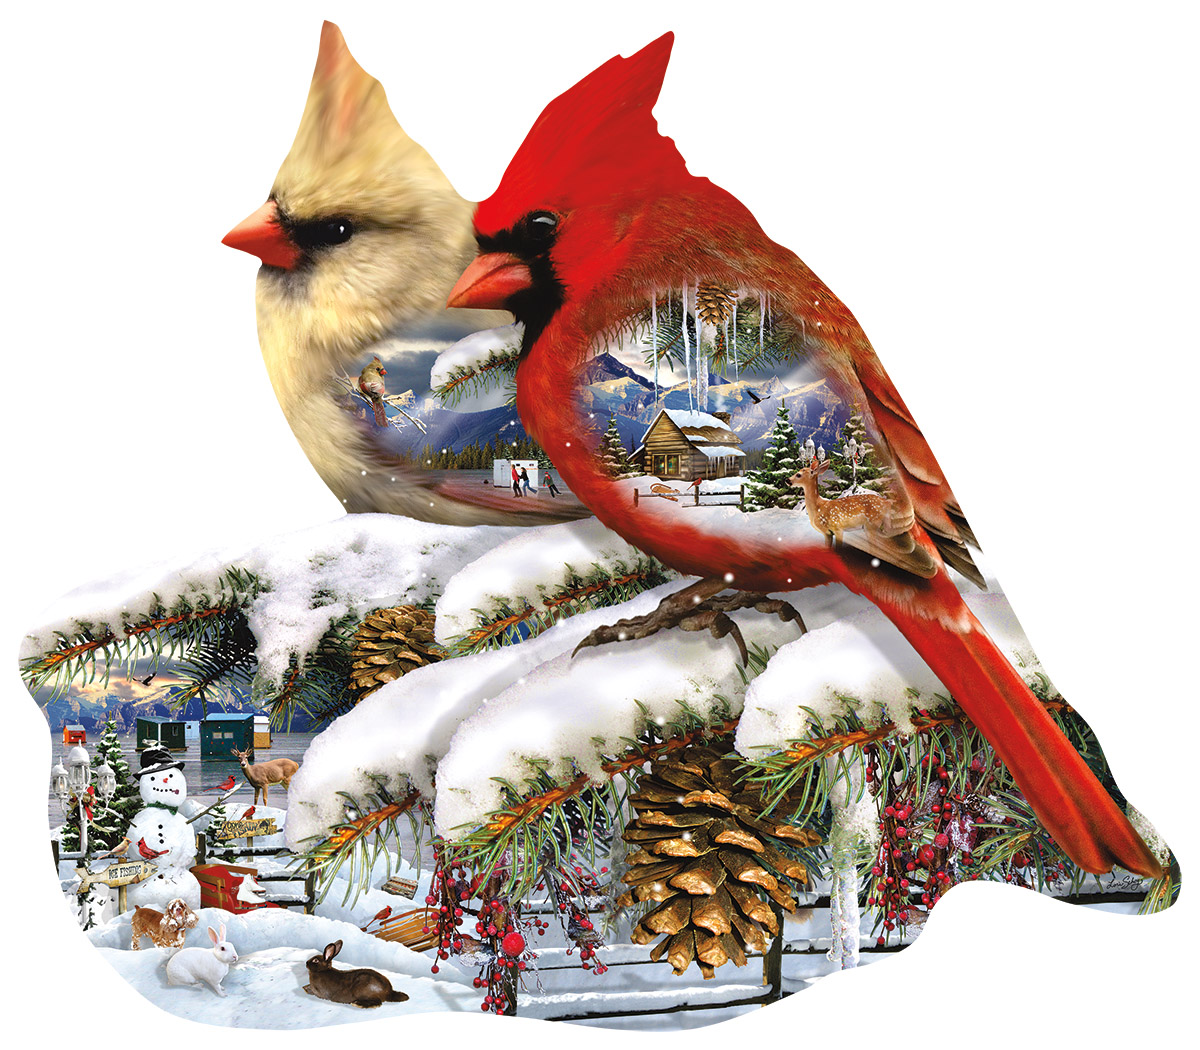 lori-schory-winter-cardinals